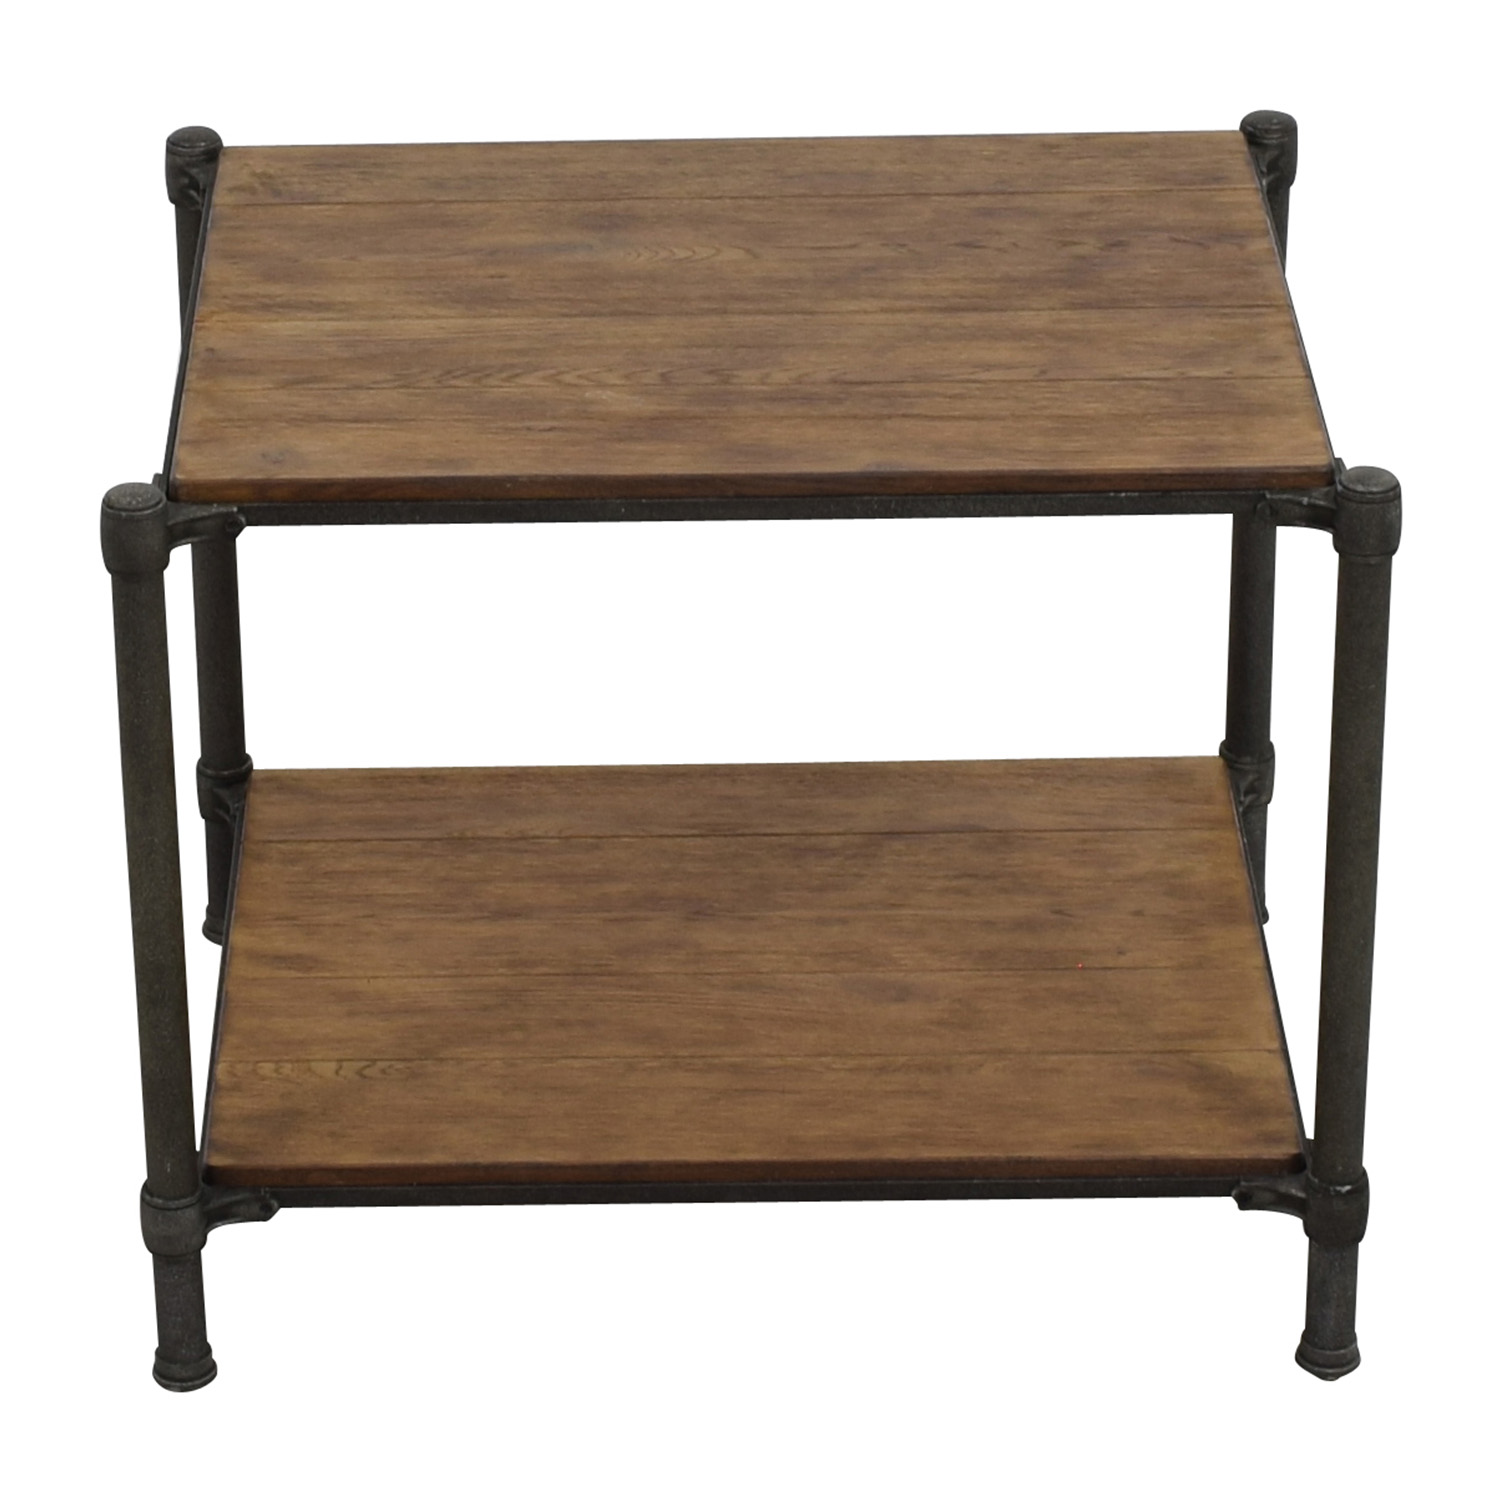 shop Ethan Allen Ethan Allen Metal and Wood End Table online